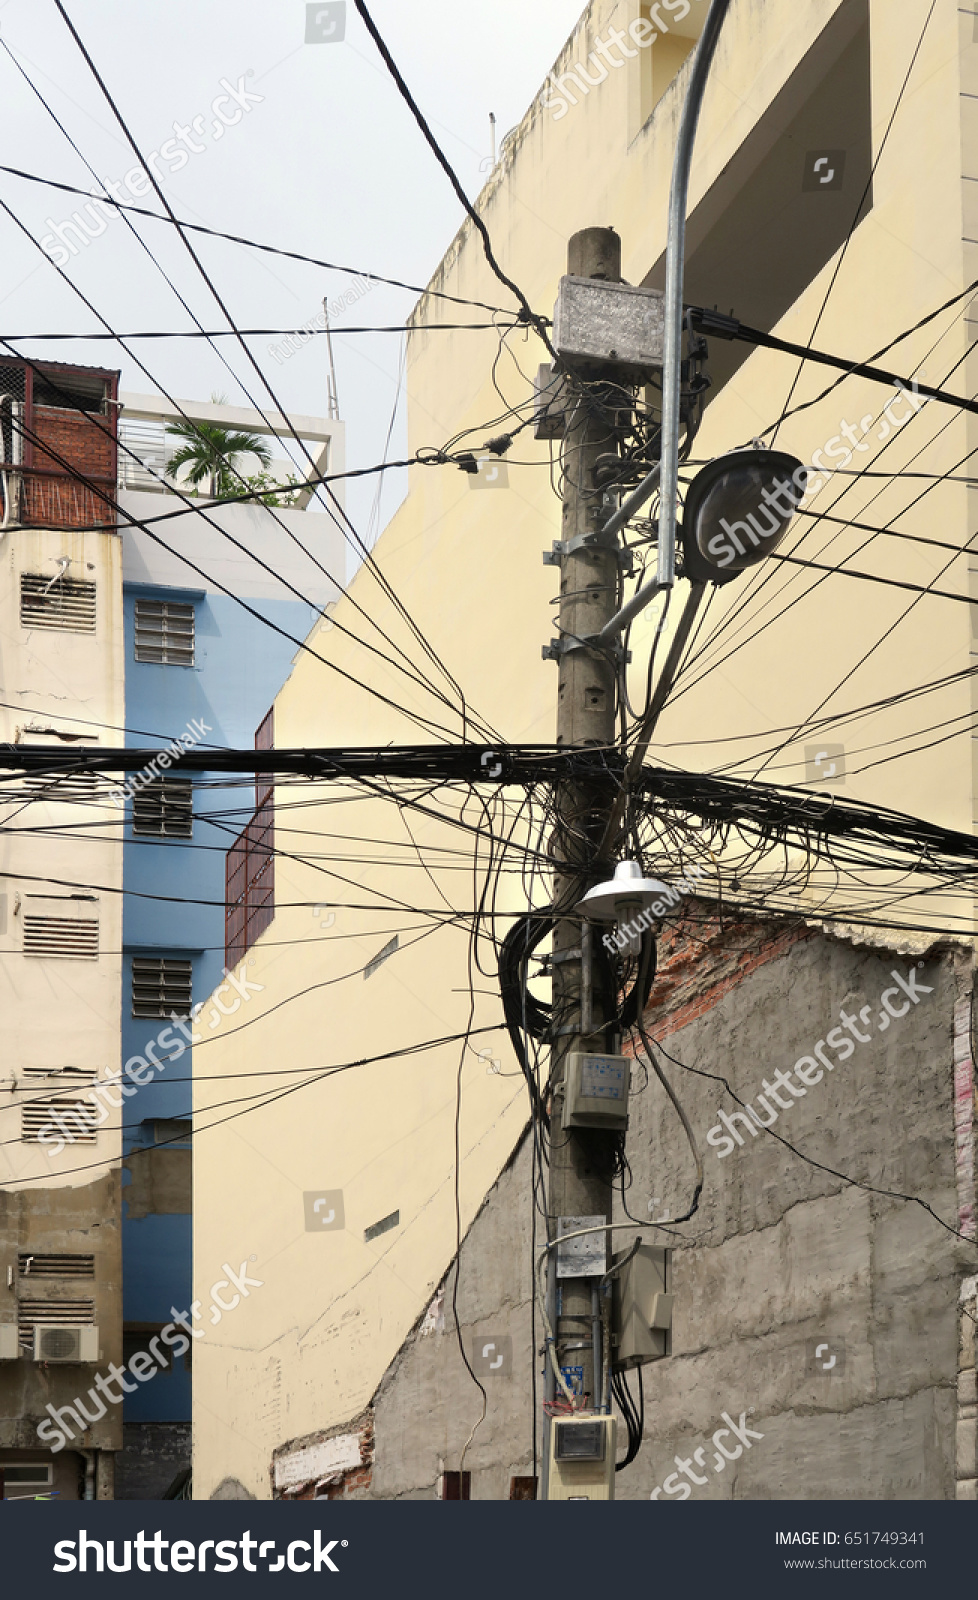 hight resolution of residential power supply tangled wires on a telephone pole for supplying neighboring apartment buildings with electricity in downtown saigon vietnam